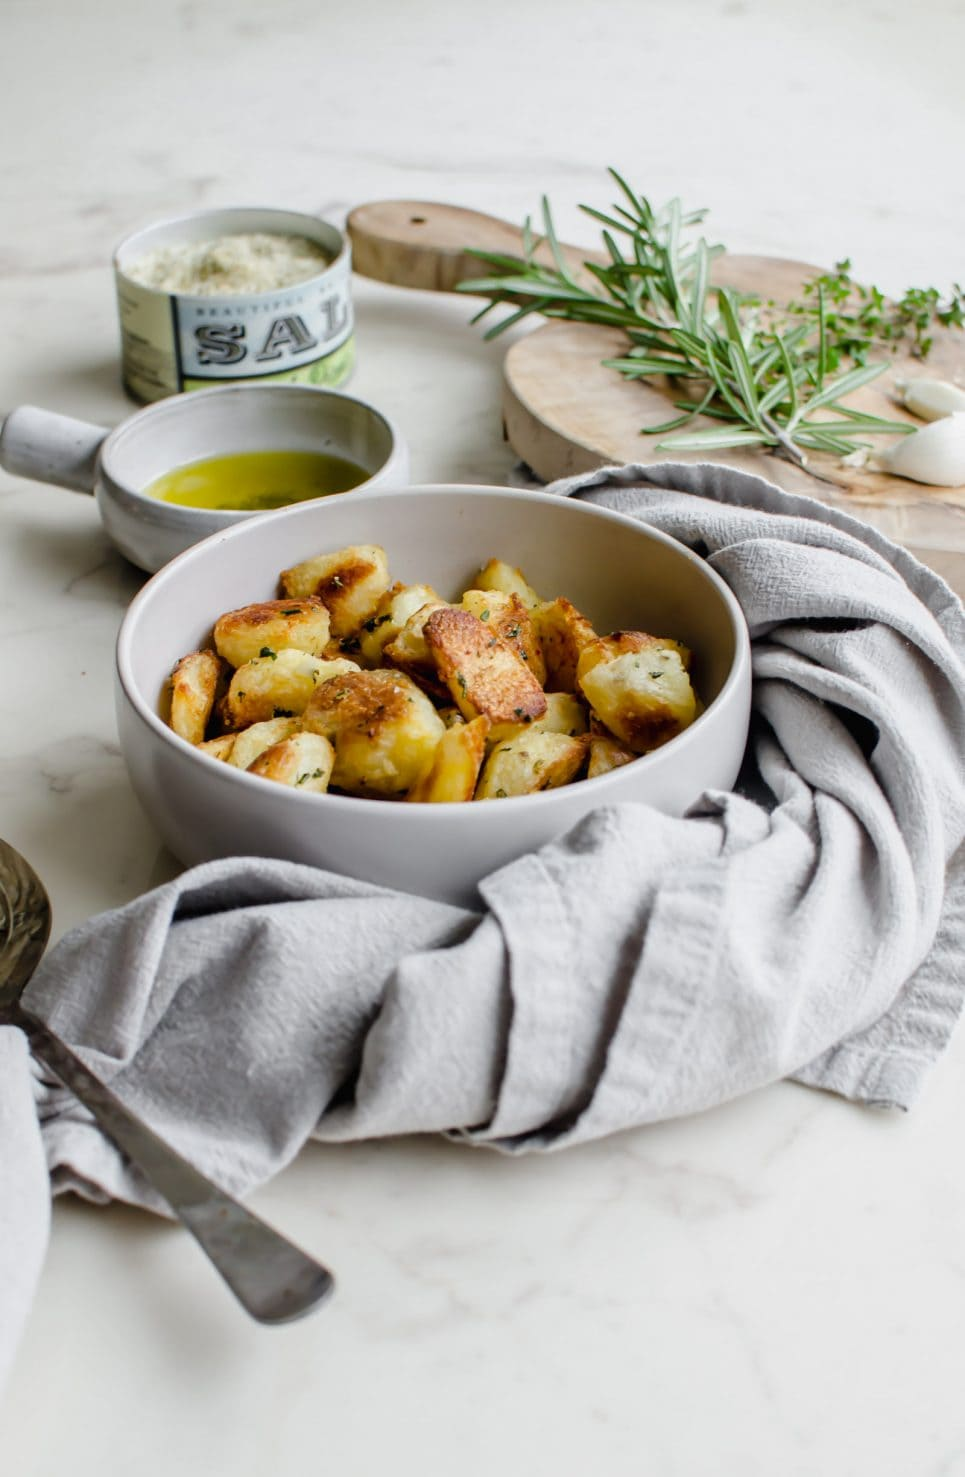 A grey bowl filled with crispy roasted potatoes with bowls of salt and olive oil on the side.